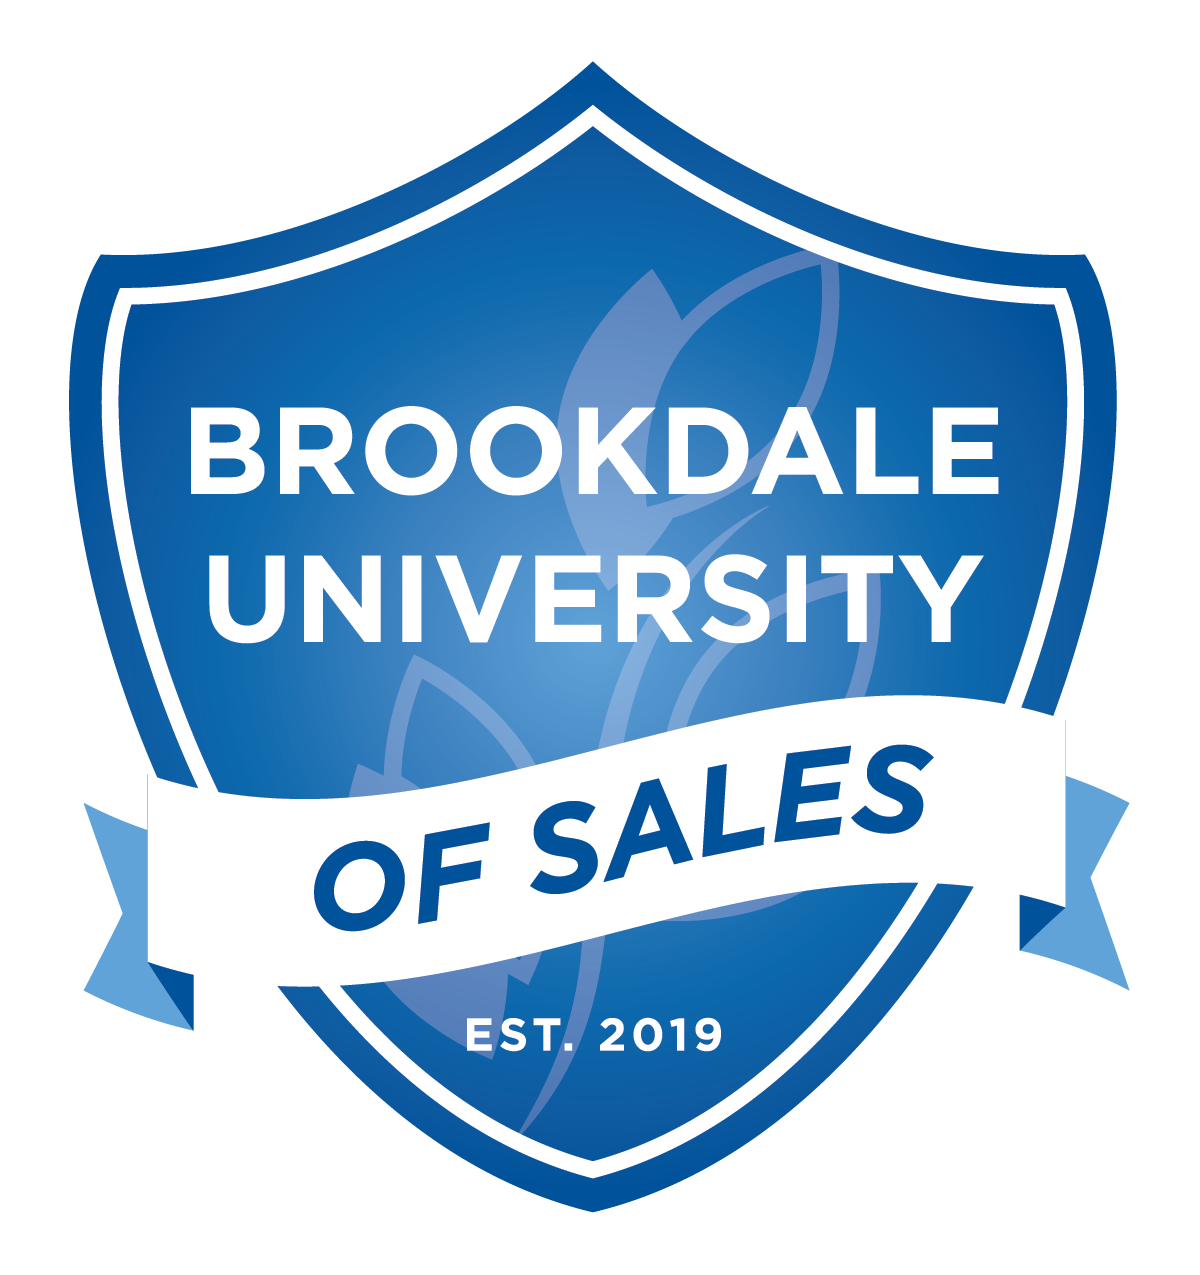 Brookdale University of Sales